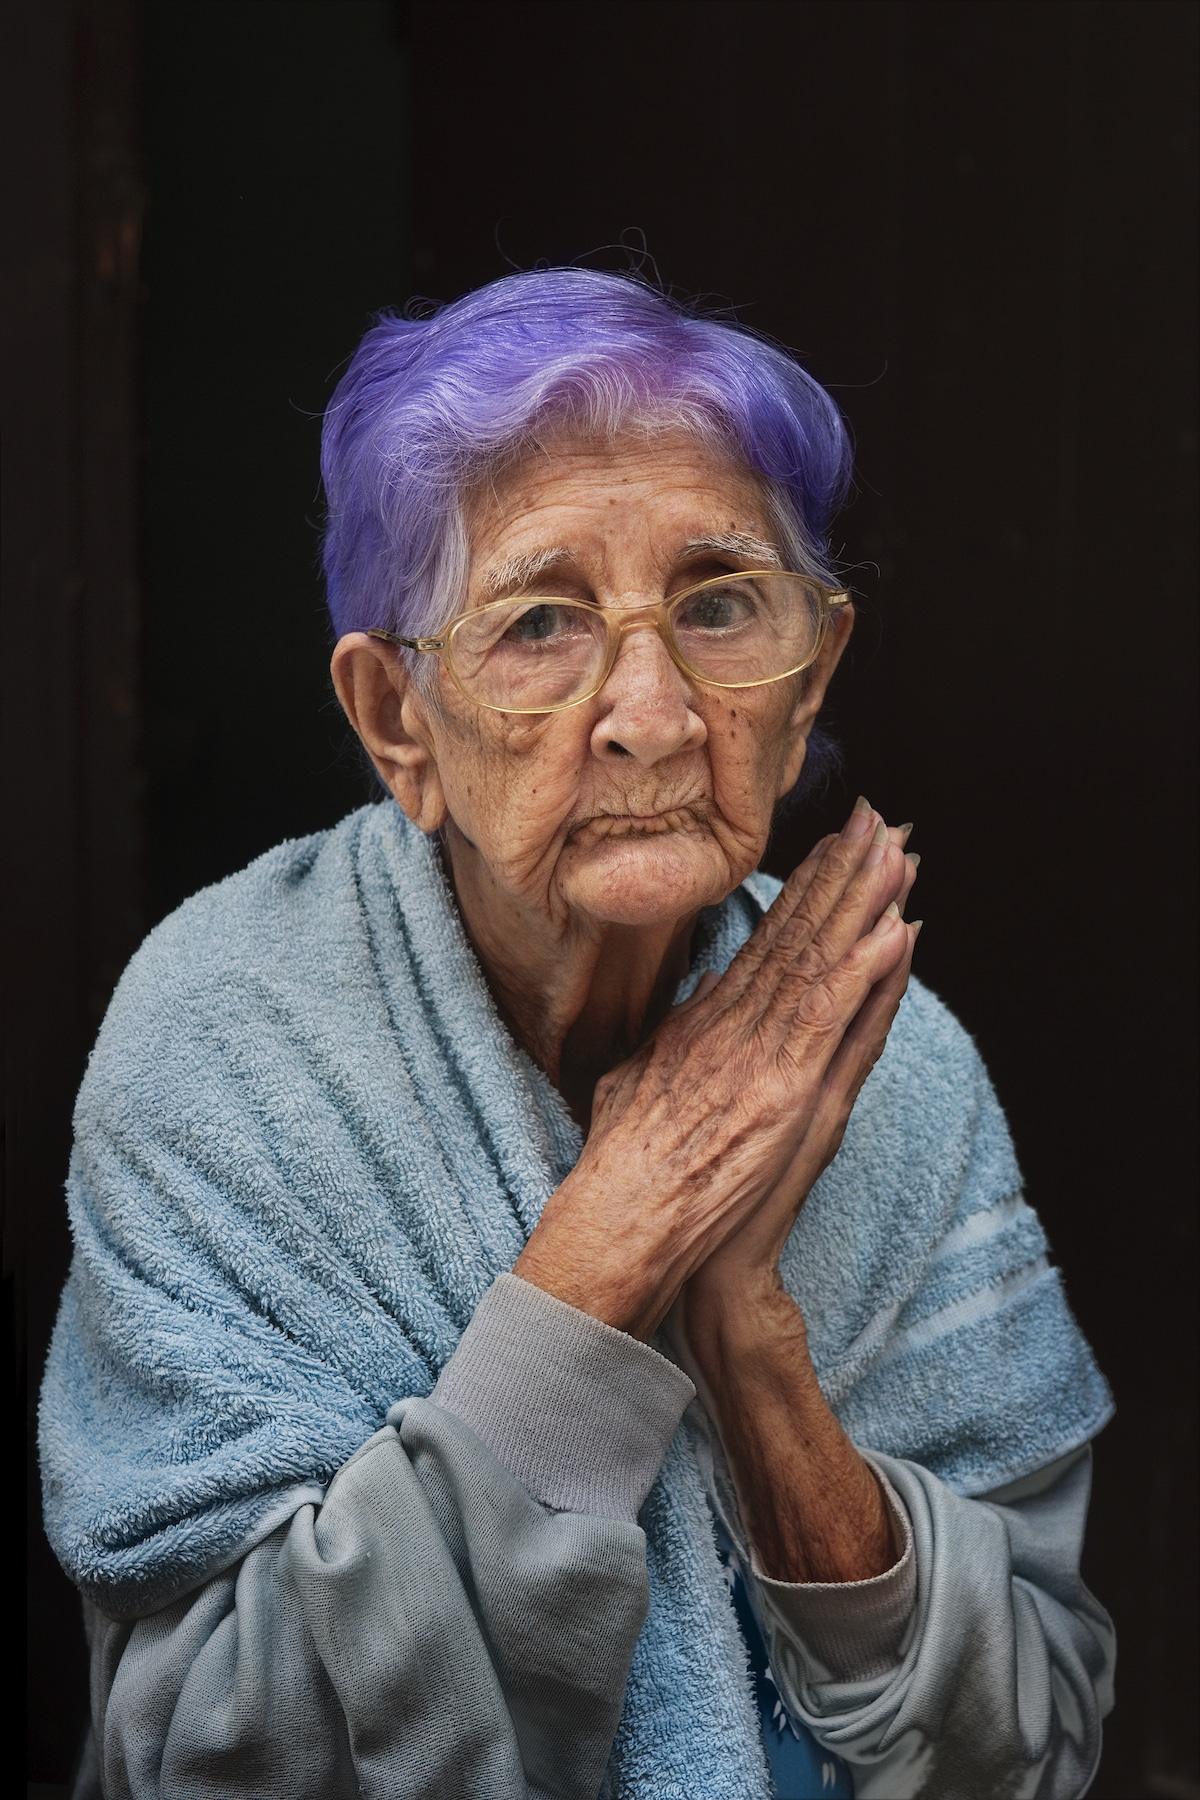 Older Woman with Purple Hair in Havana by Steve McCurry